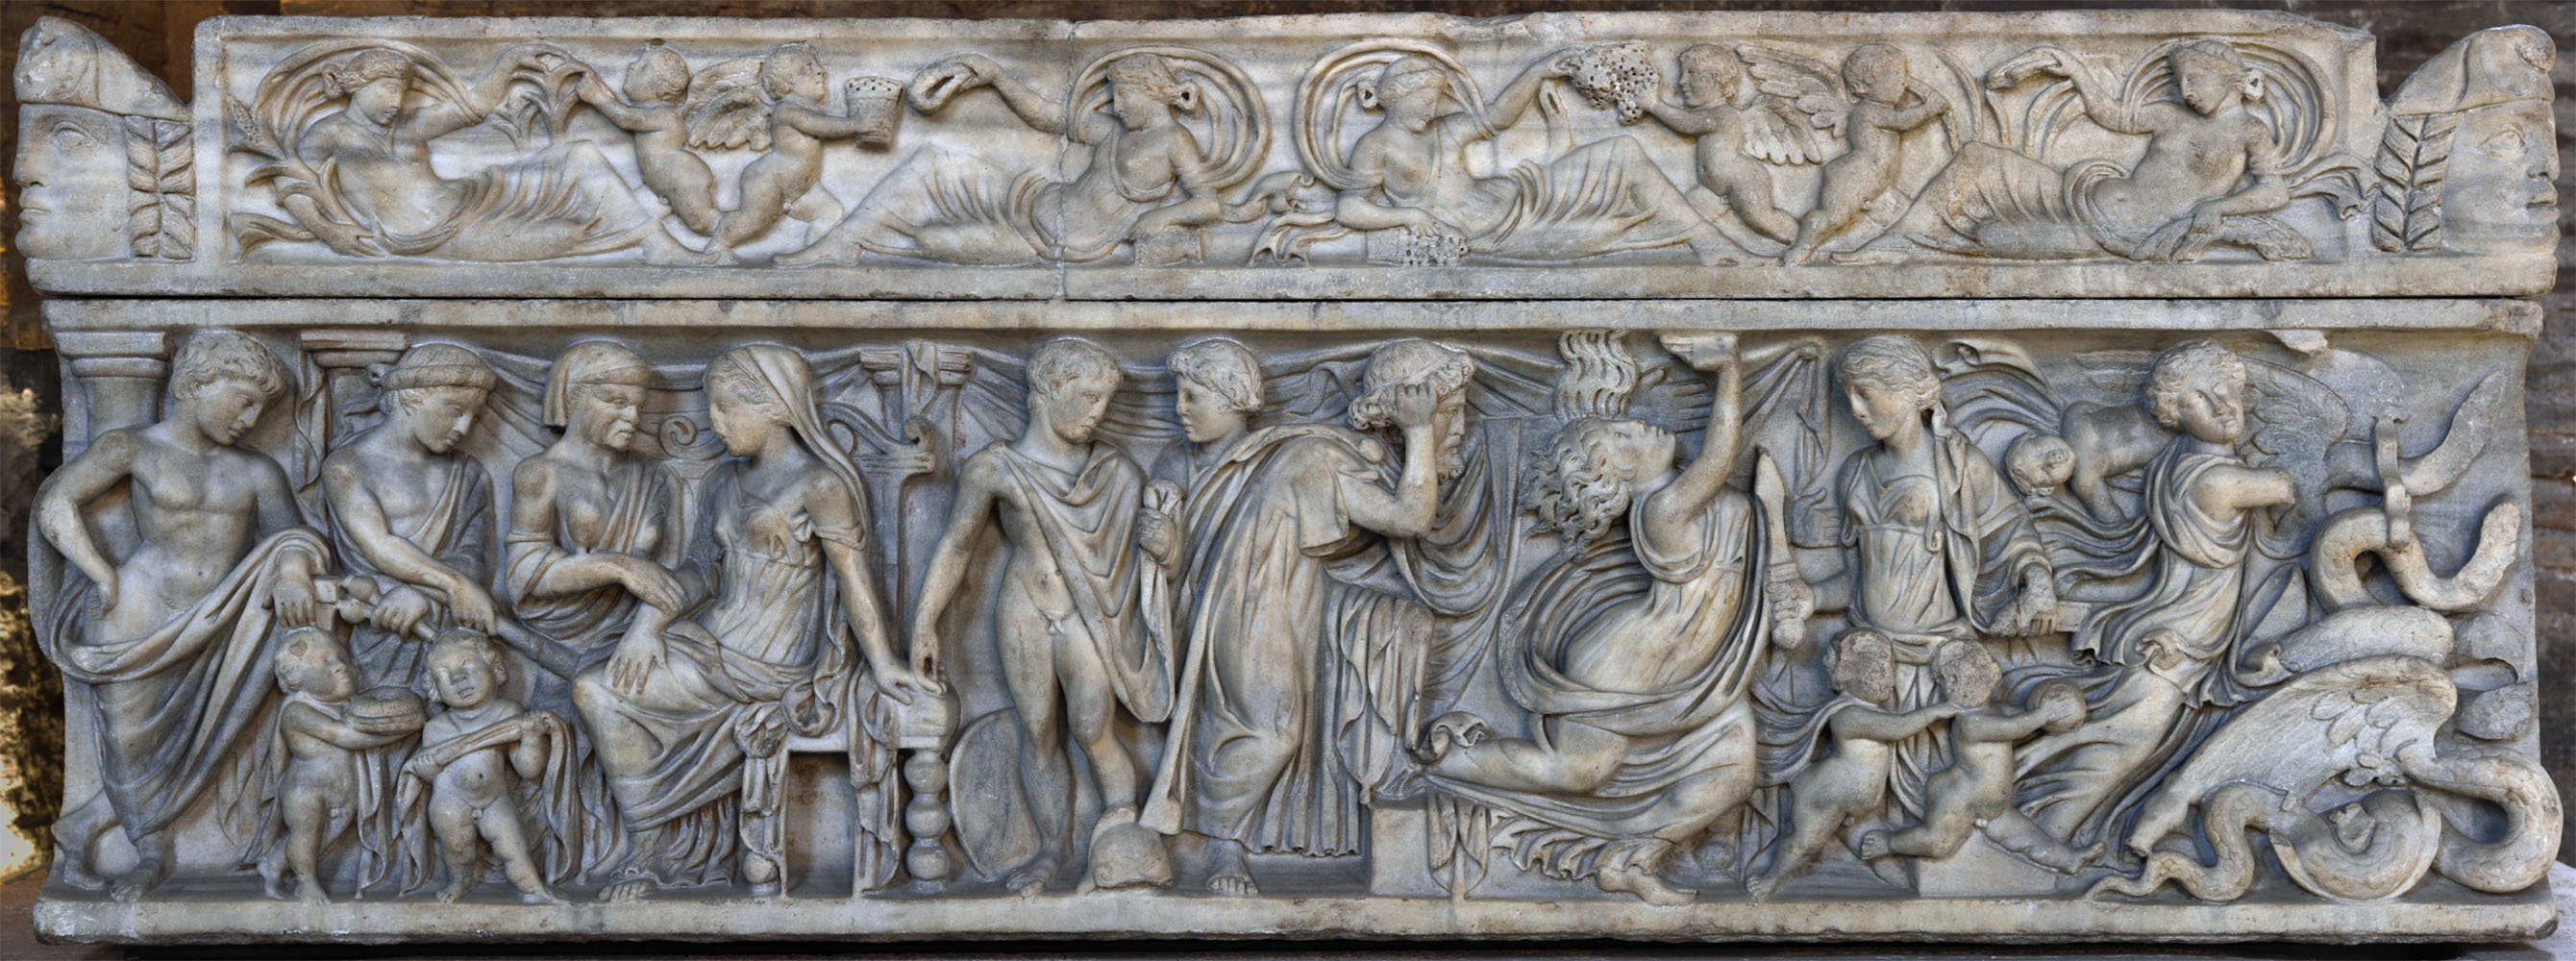 Sarcophagus with the myth of Medea. Lid frieze and front relief. Marble. 2-nd half of the 2-nd cent. CE. Rome, Roman National Museum, Baths of Diocletian, Aula X